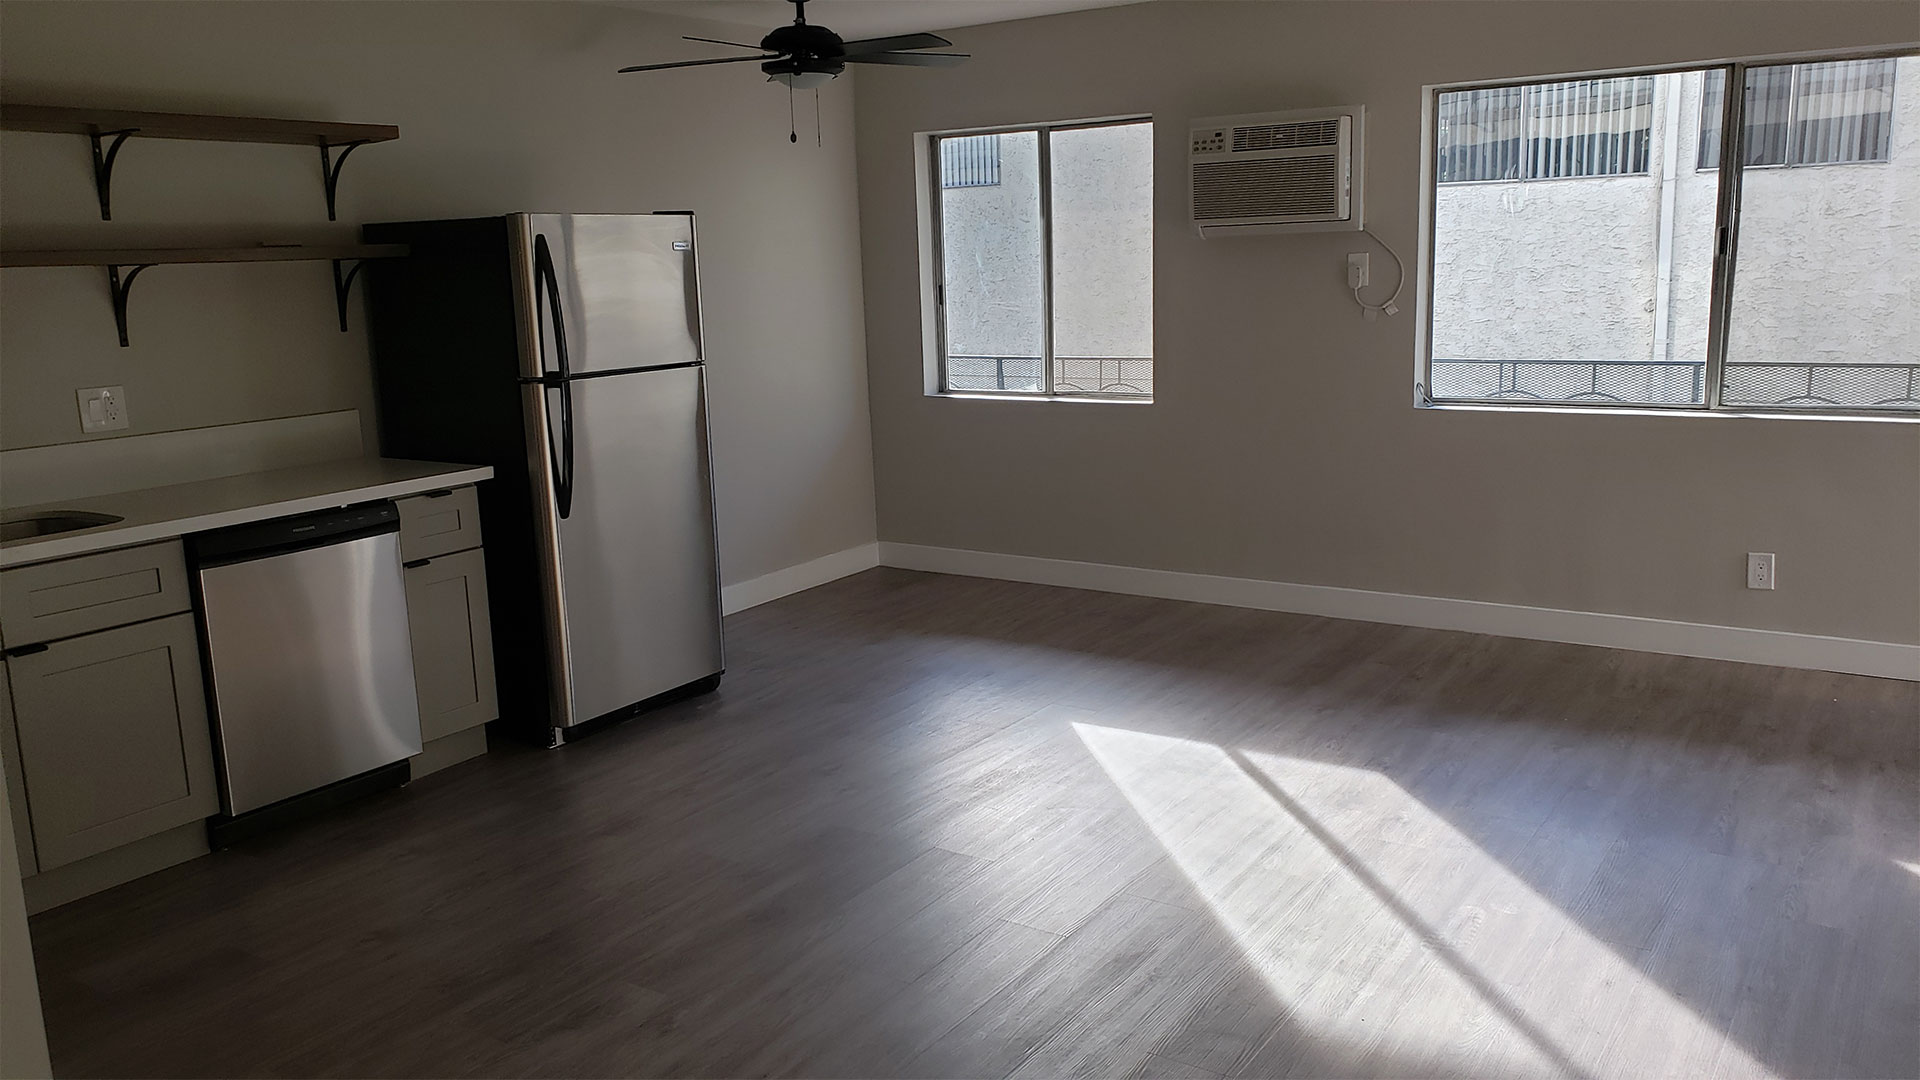 Kitchen Area With AC Unit, Hard-Wood Flooring, Plenty of Natural Light at Wilson Apartments in Glendale, CA